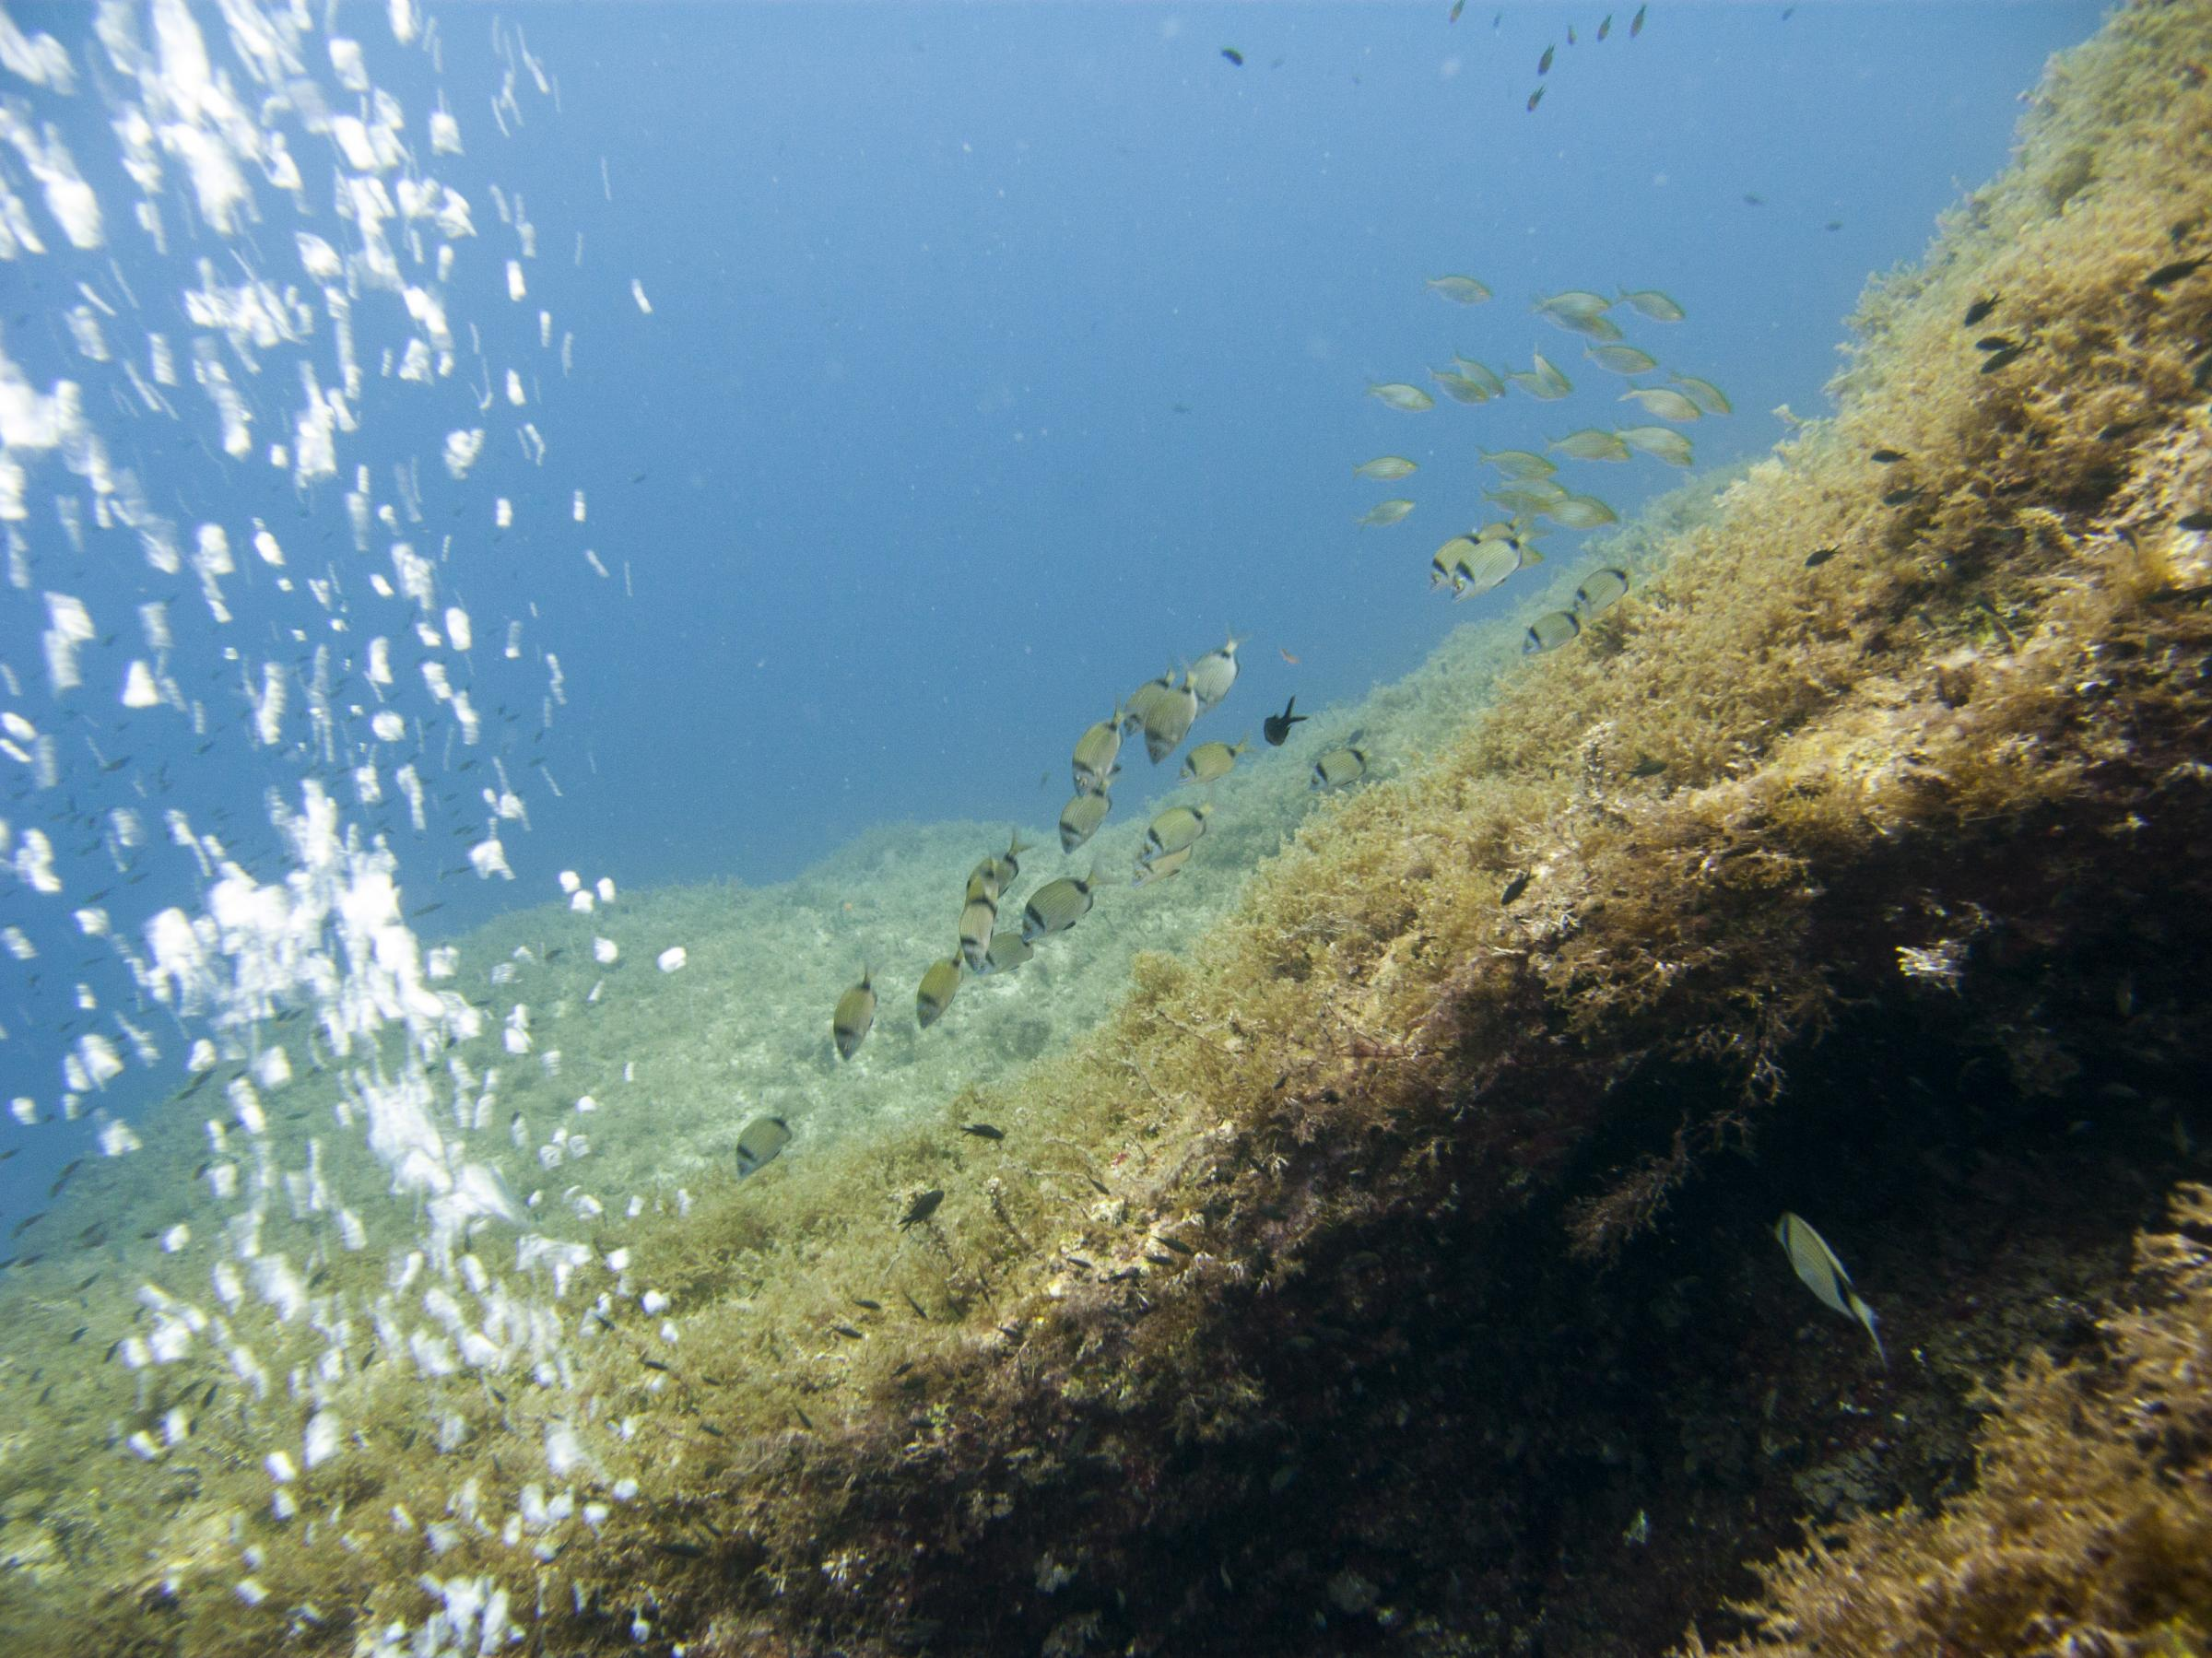 Shoals of fish at West Reef